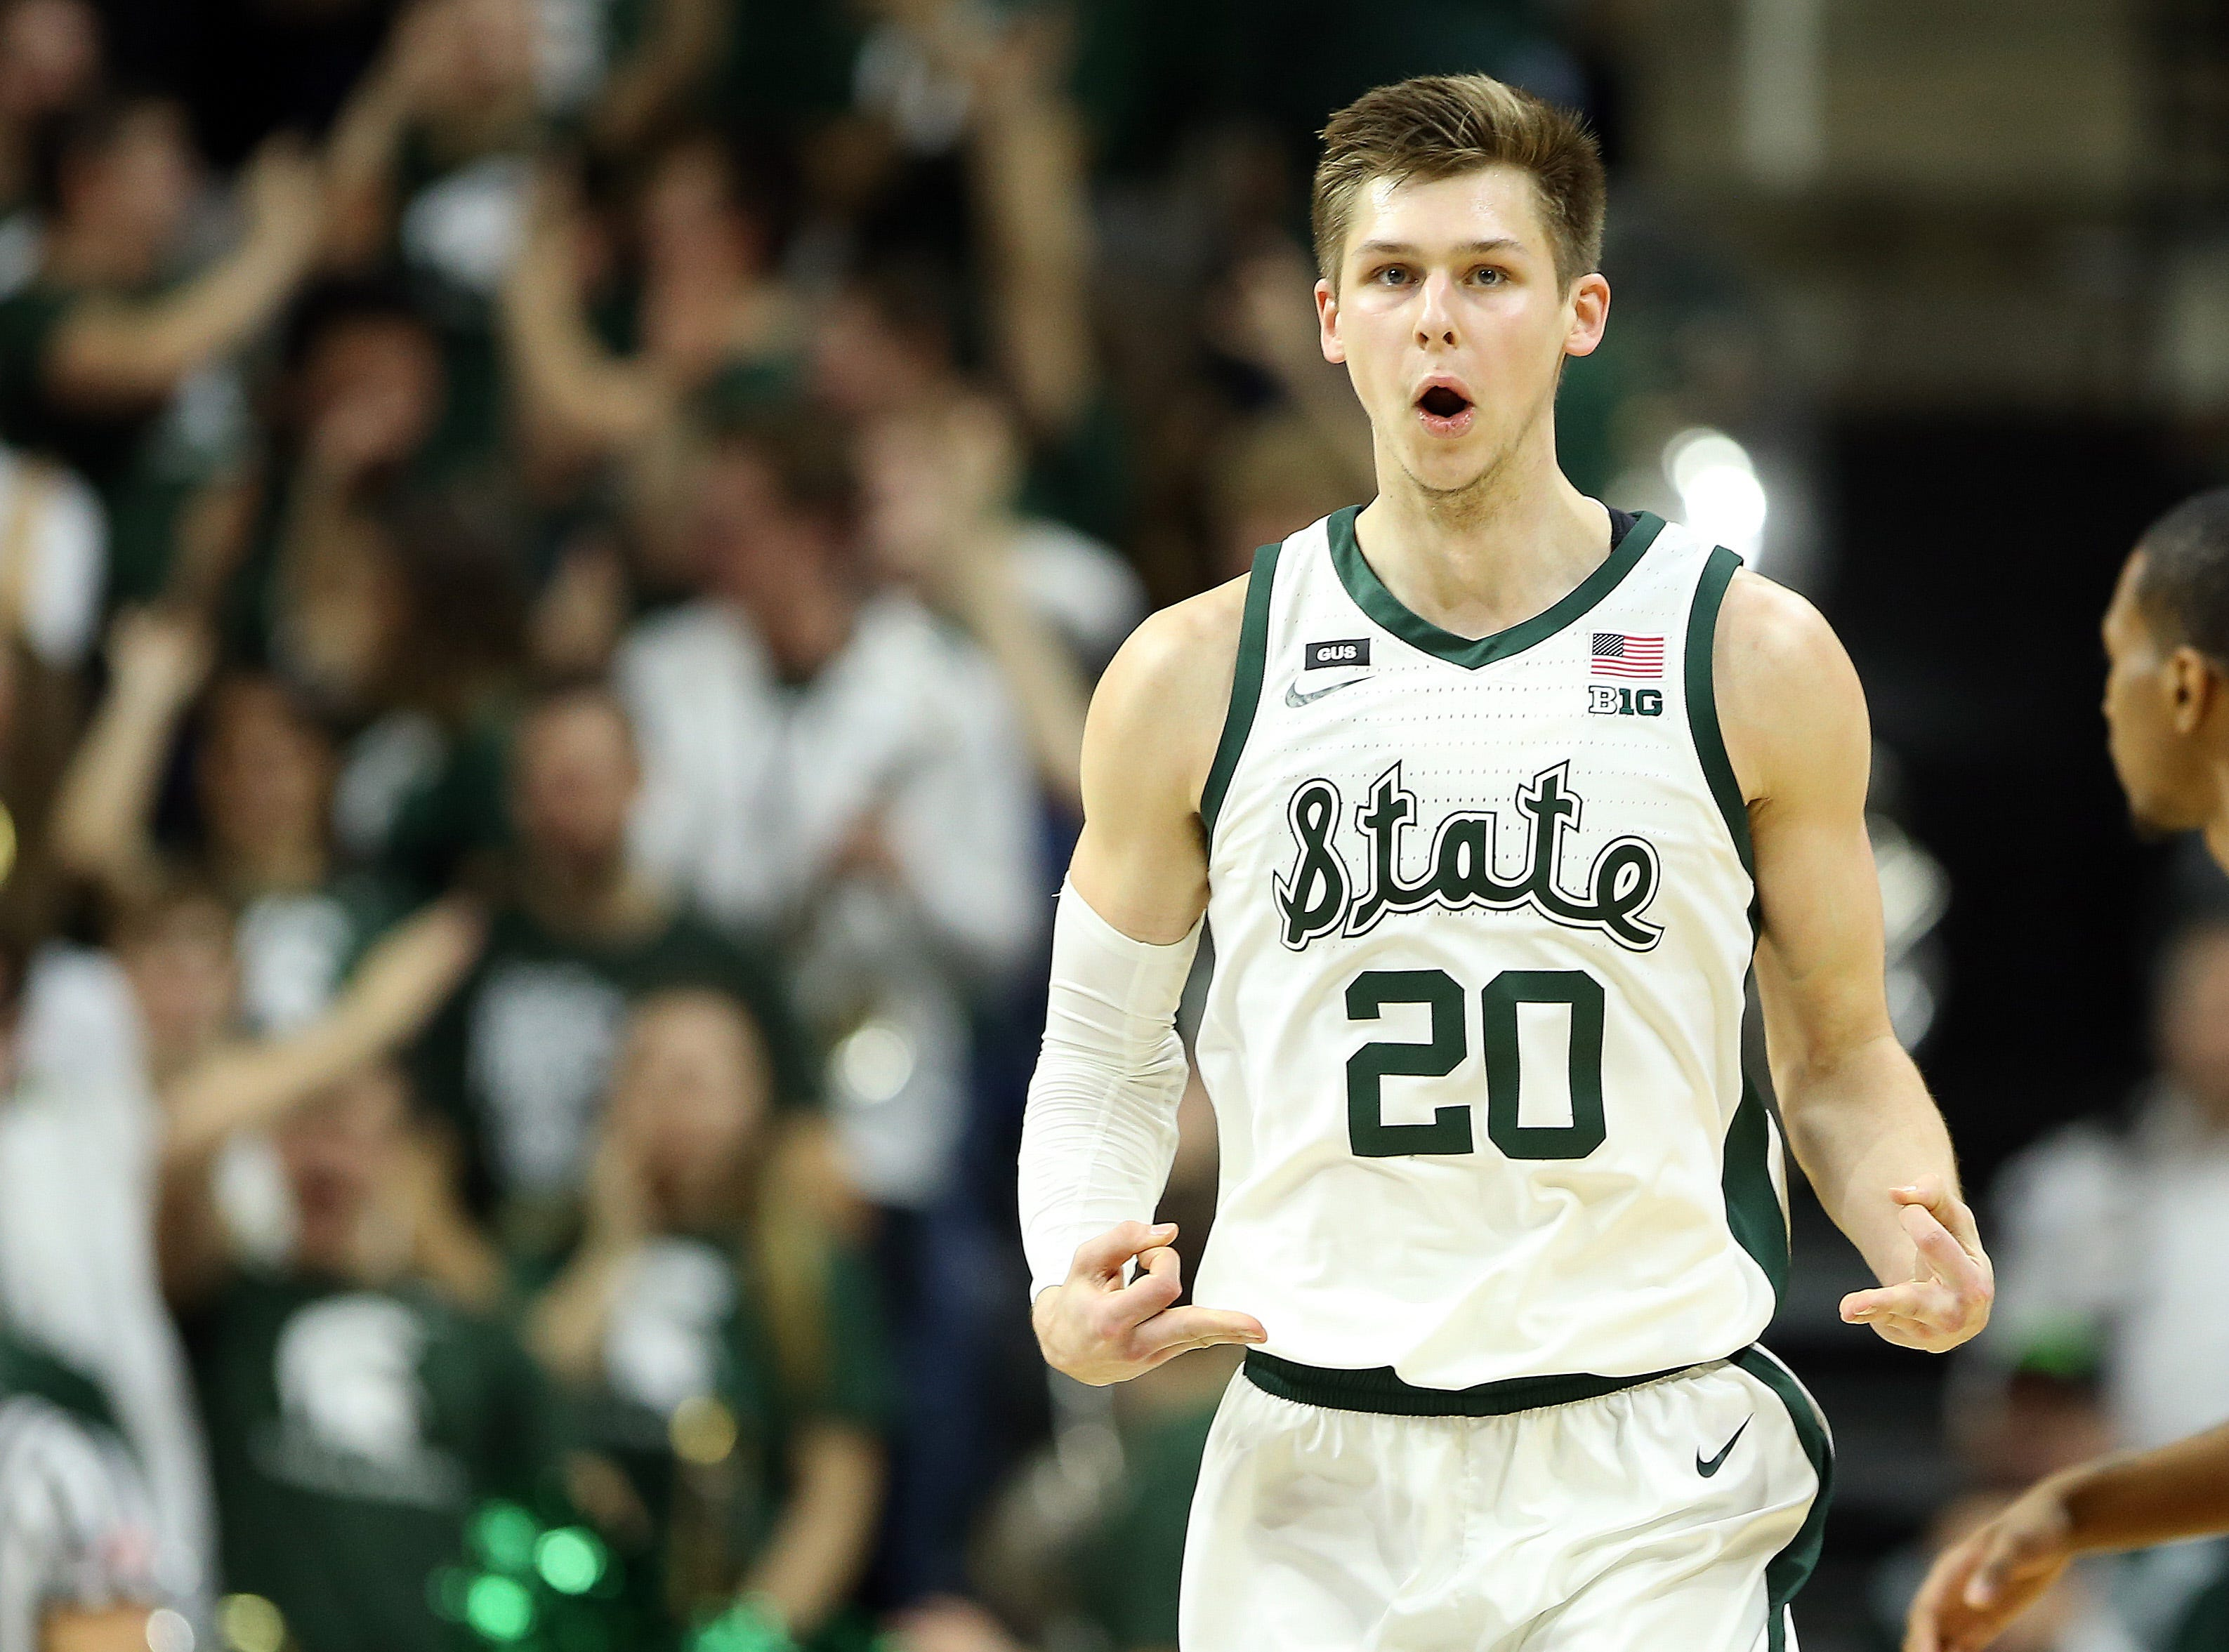 Feb 9, 2019; East Lansing, MI, USA; Michigan State Spartans guard Matt McQuaid (20) reacts during the first half against the Minnesota Golden Gophers at the Breslin Center. Mandatory Credit: Mike Carter-USA TODAY Sports